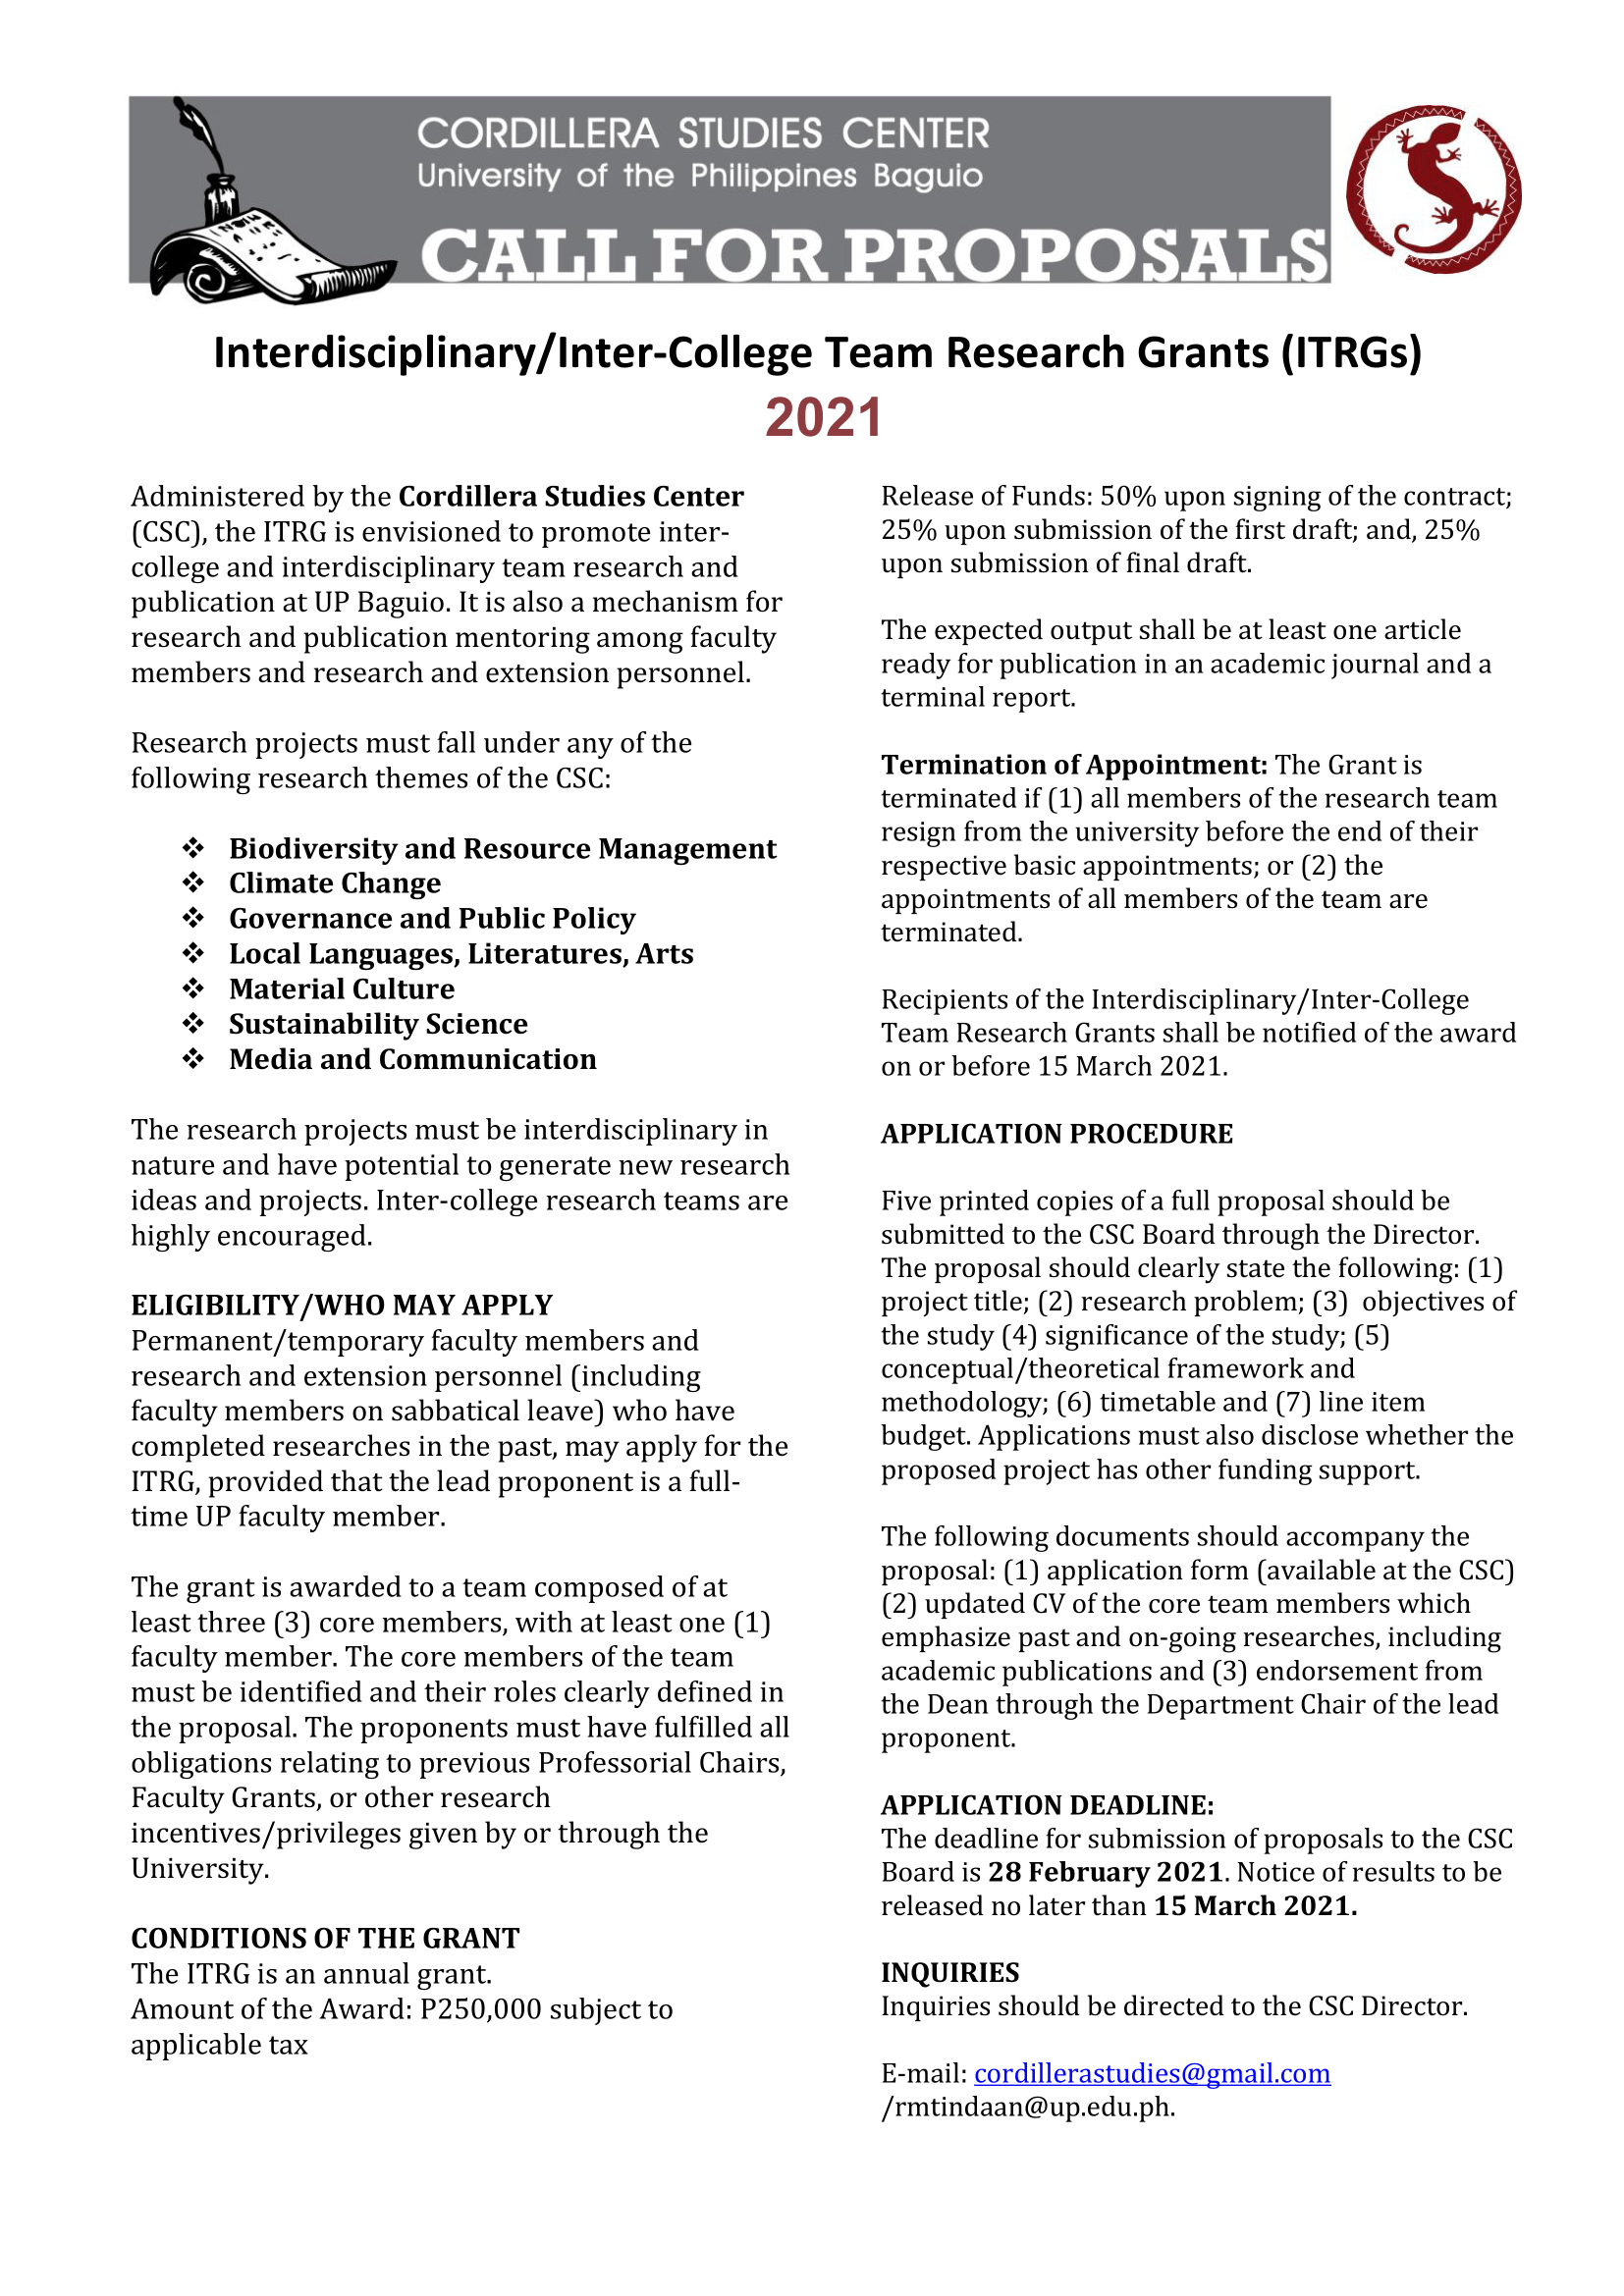 Research Grant Call for Proposals